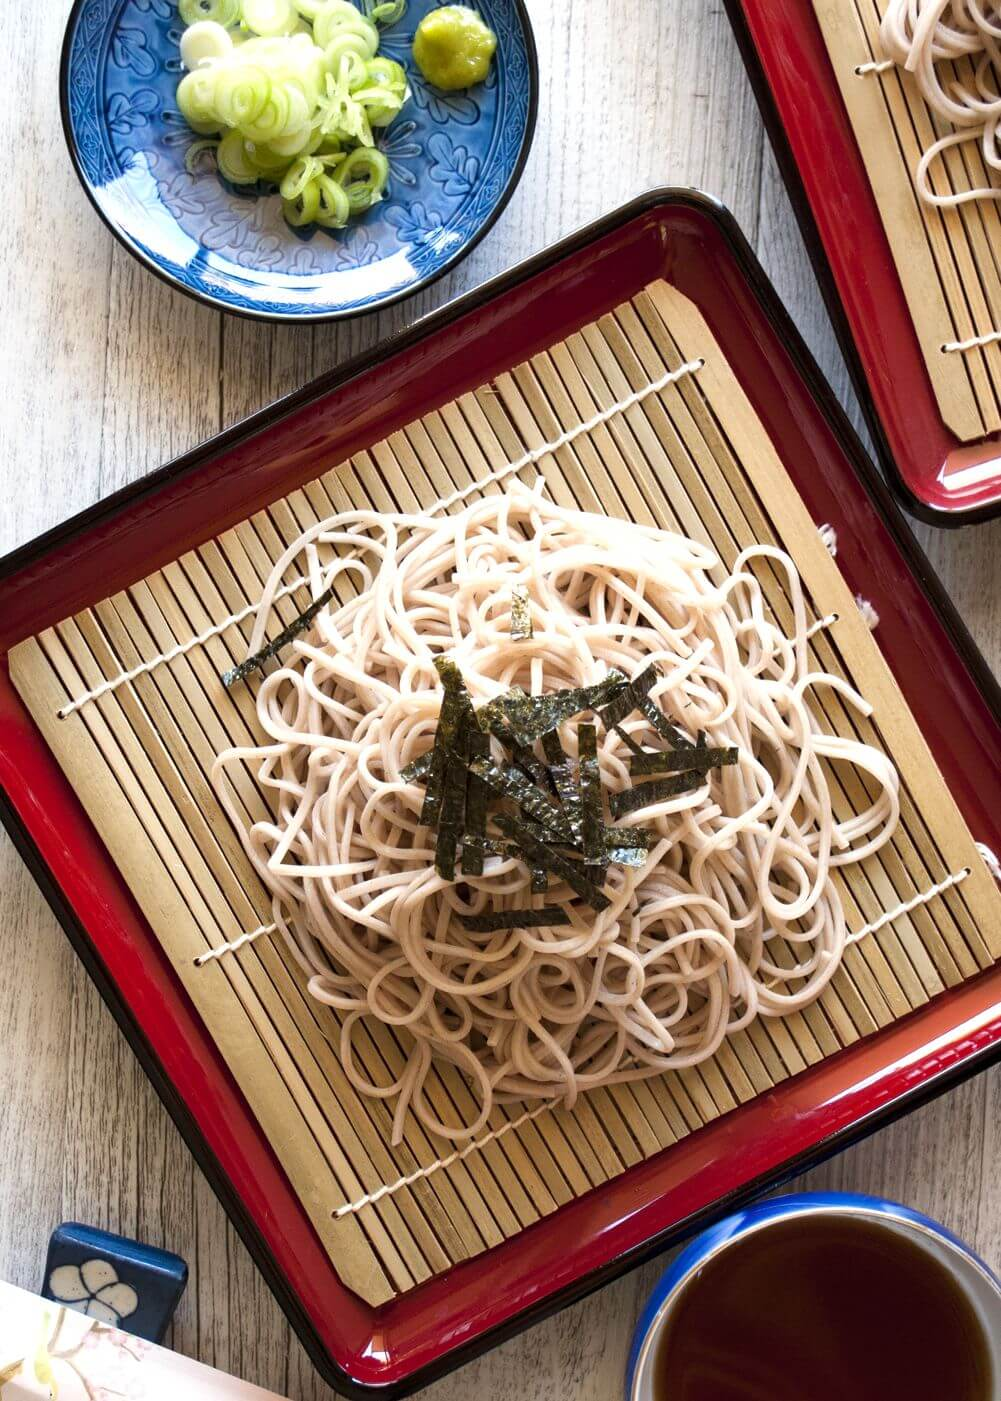 Zaru soba (cold soba noodles) is the best way to eat soba (buckwheat) noodles. Zaru soba is the simplest form of eating noodles and so fast to make. It is a popular summer dish in Japan of course but if you want to be like a connoisseur and enjoy the soba itself, then eat cold even in winter. Use konbu dashi to make it a perfect vegetarian dish.